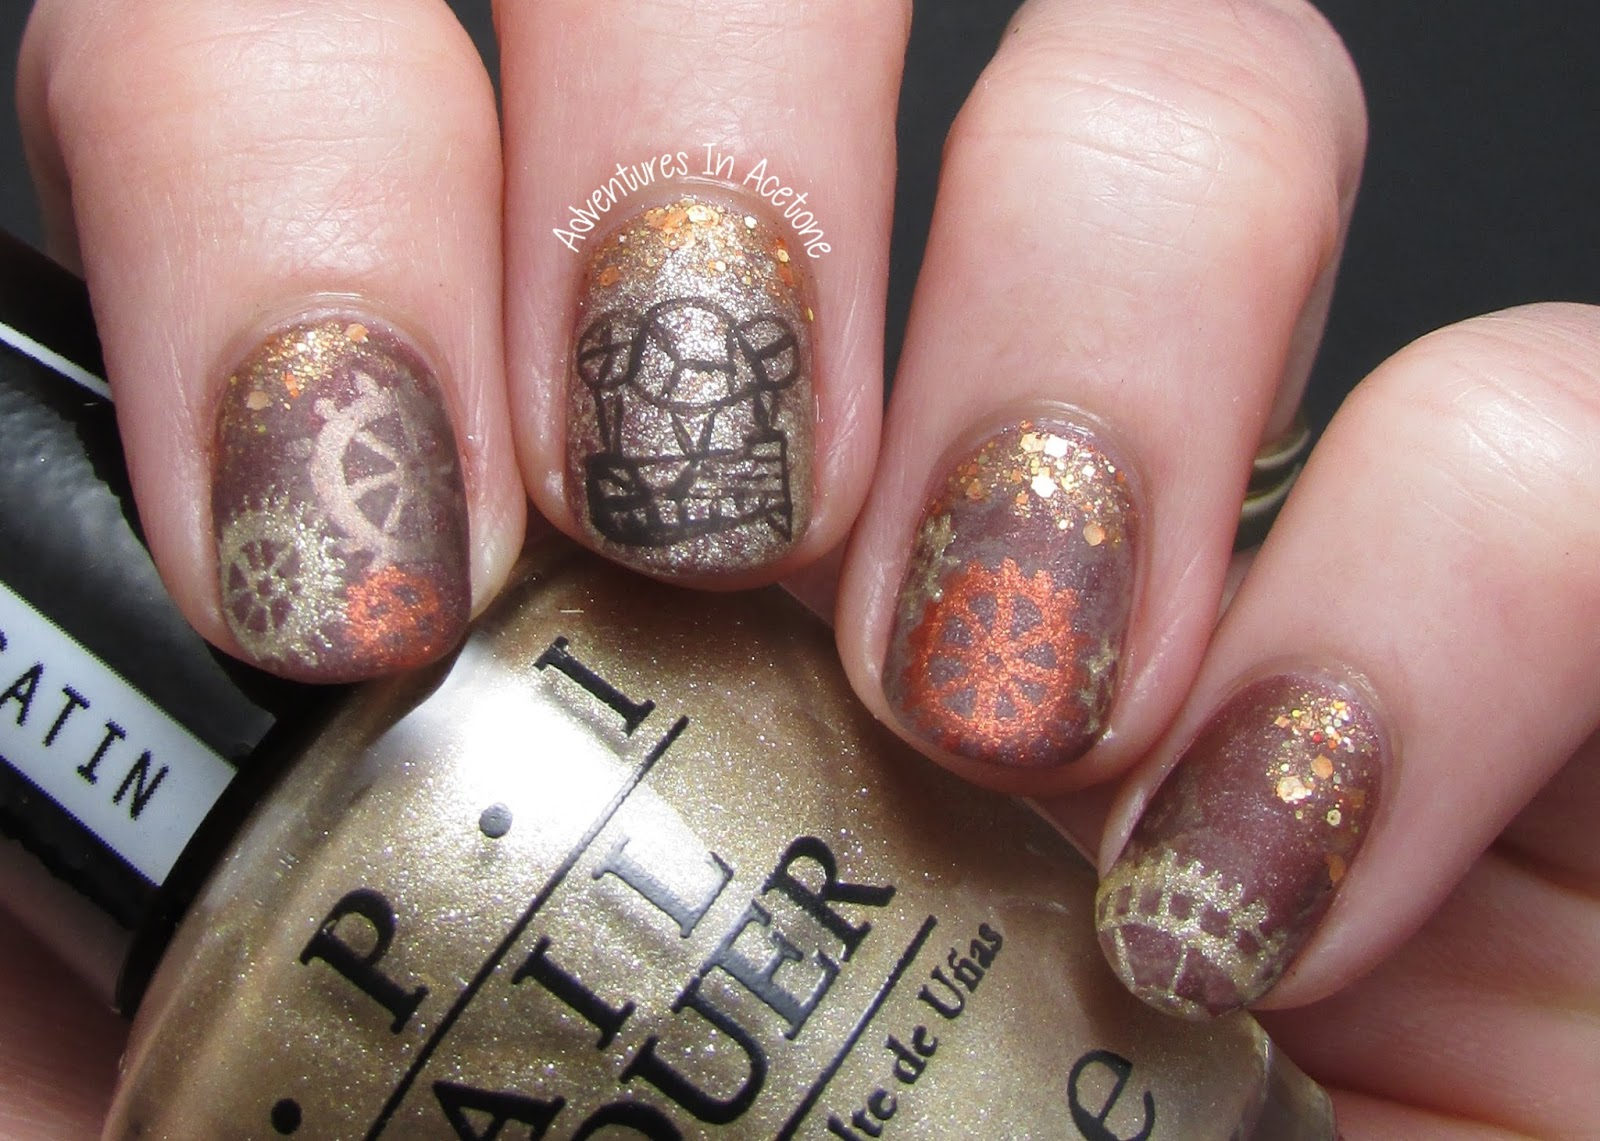 The lacquer legion reinvention steam punk nail art adventures i decided to go with a sketch of an airship for my accent nail and various gears on the other nails prinsesfo Gallery